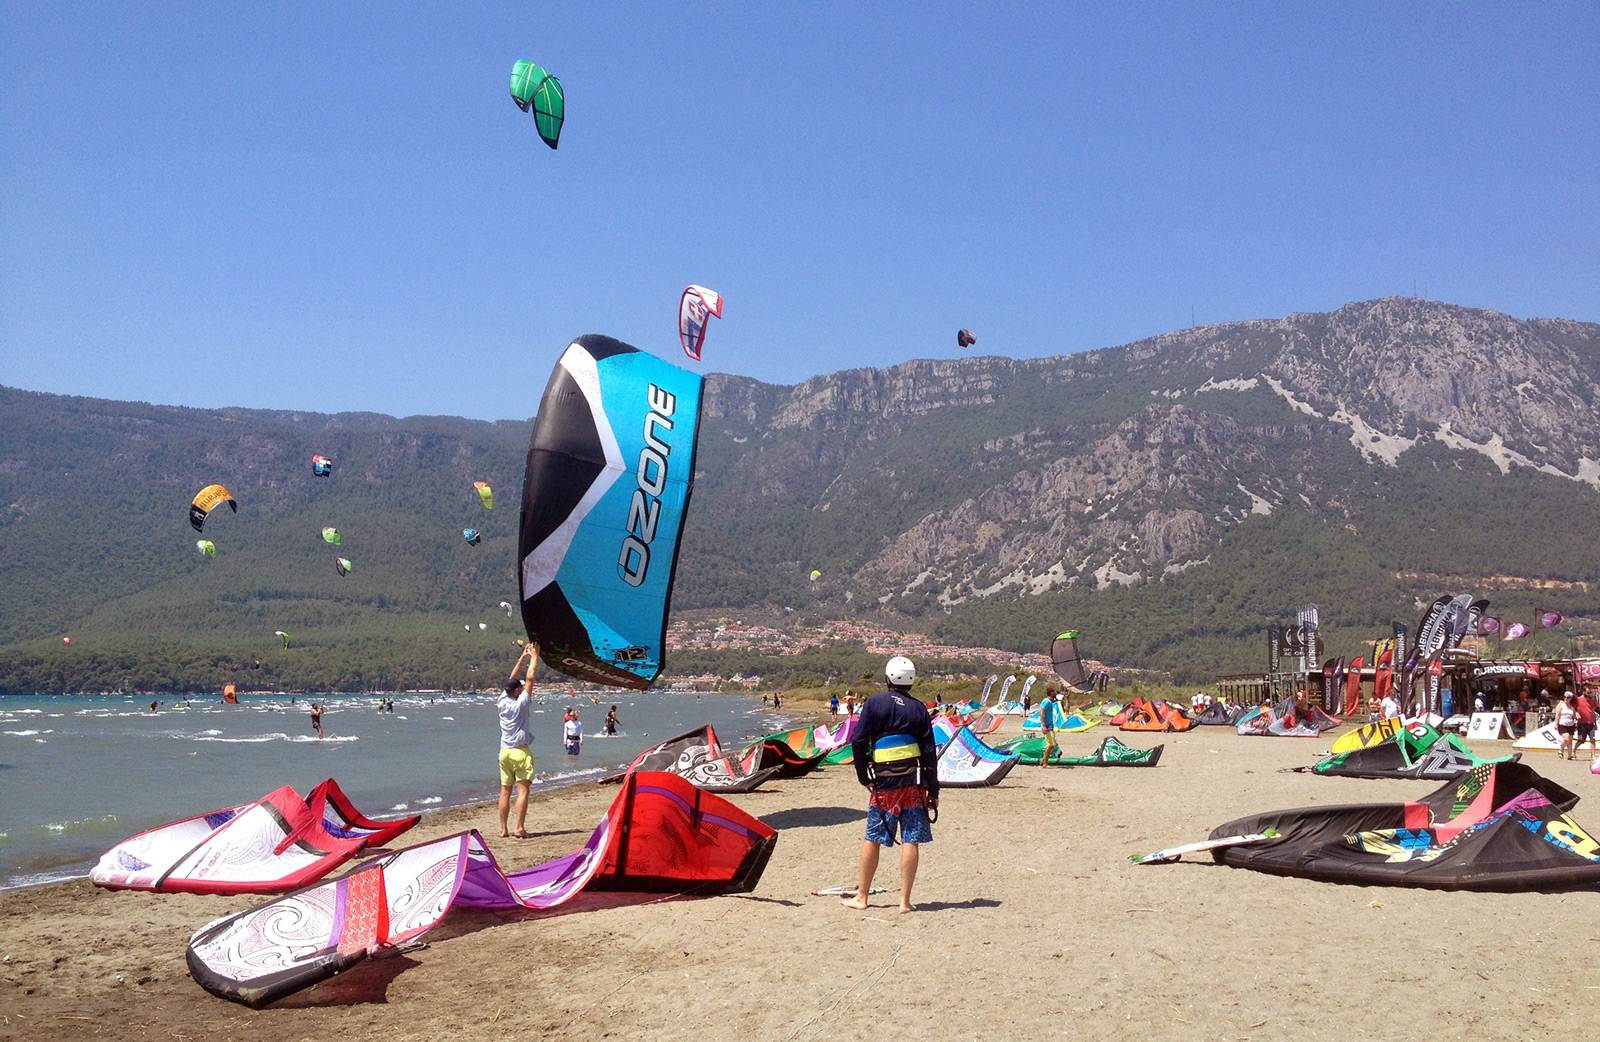 The beginner side is busy close to the beach at Gökova kitesurf spot.